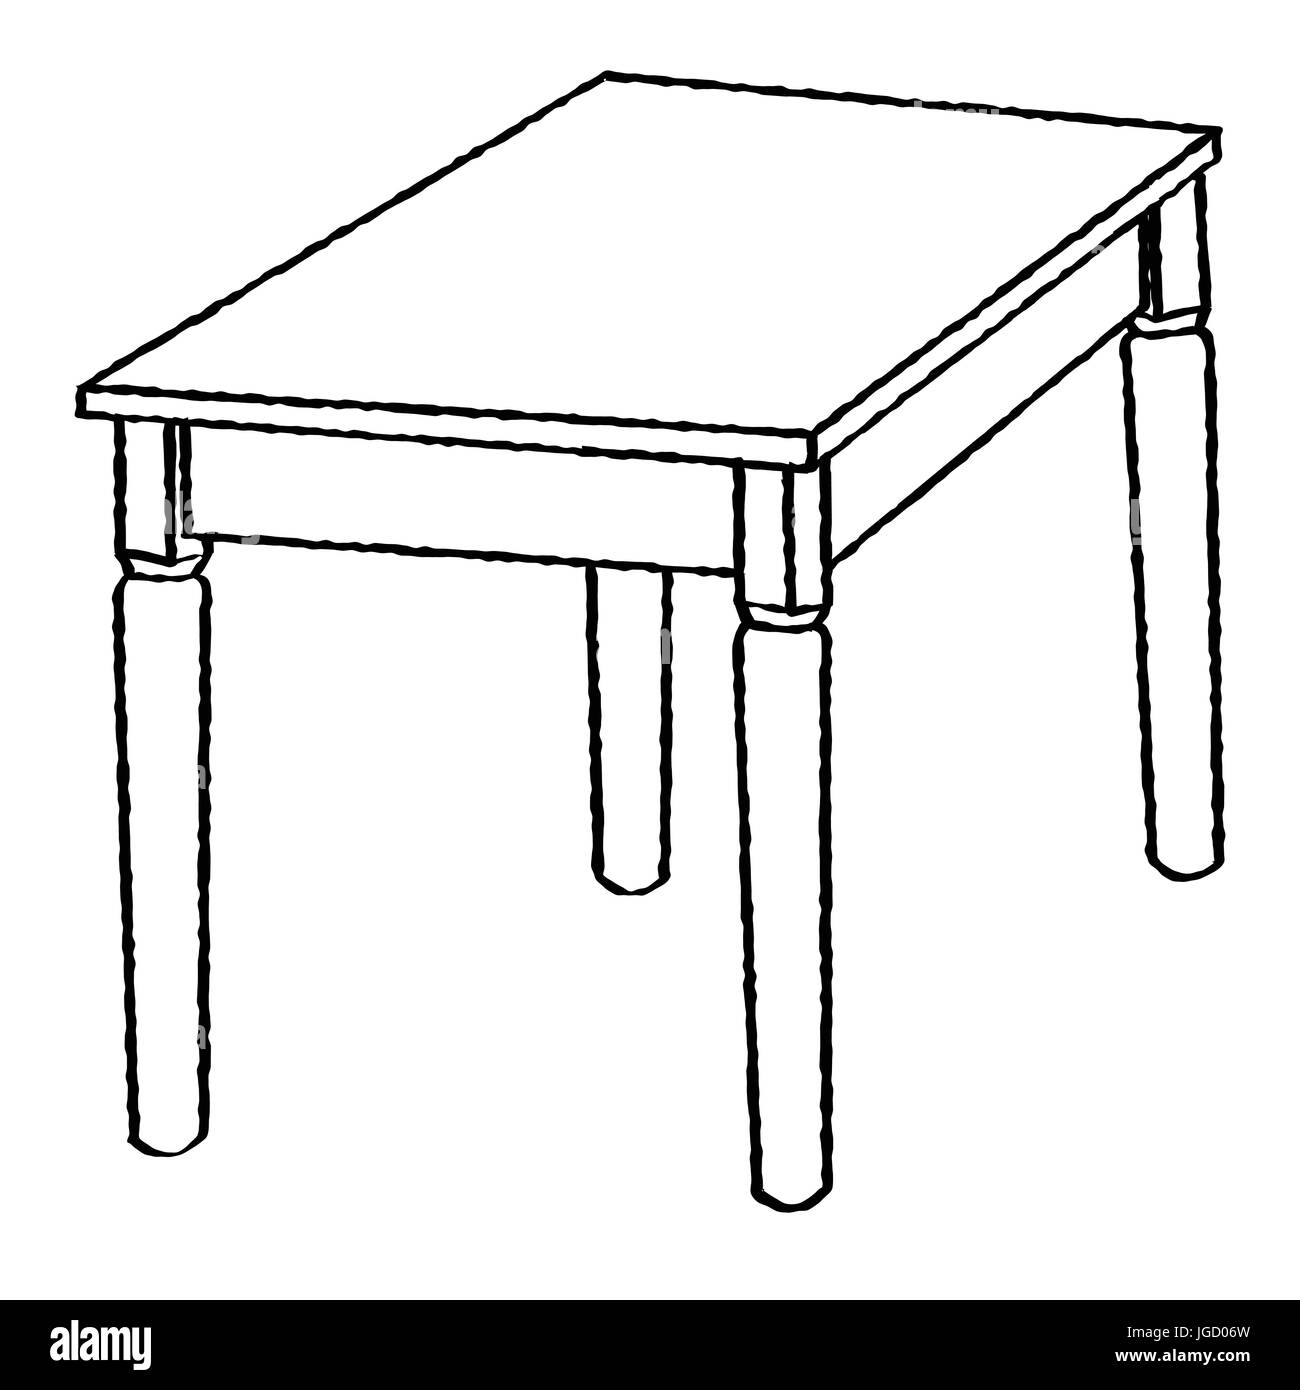 Dibujos De Mesas Para Colorear Hand Drawn Sketch Of Table Isolated Black And White